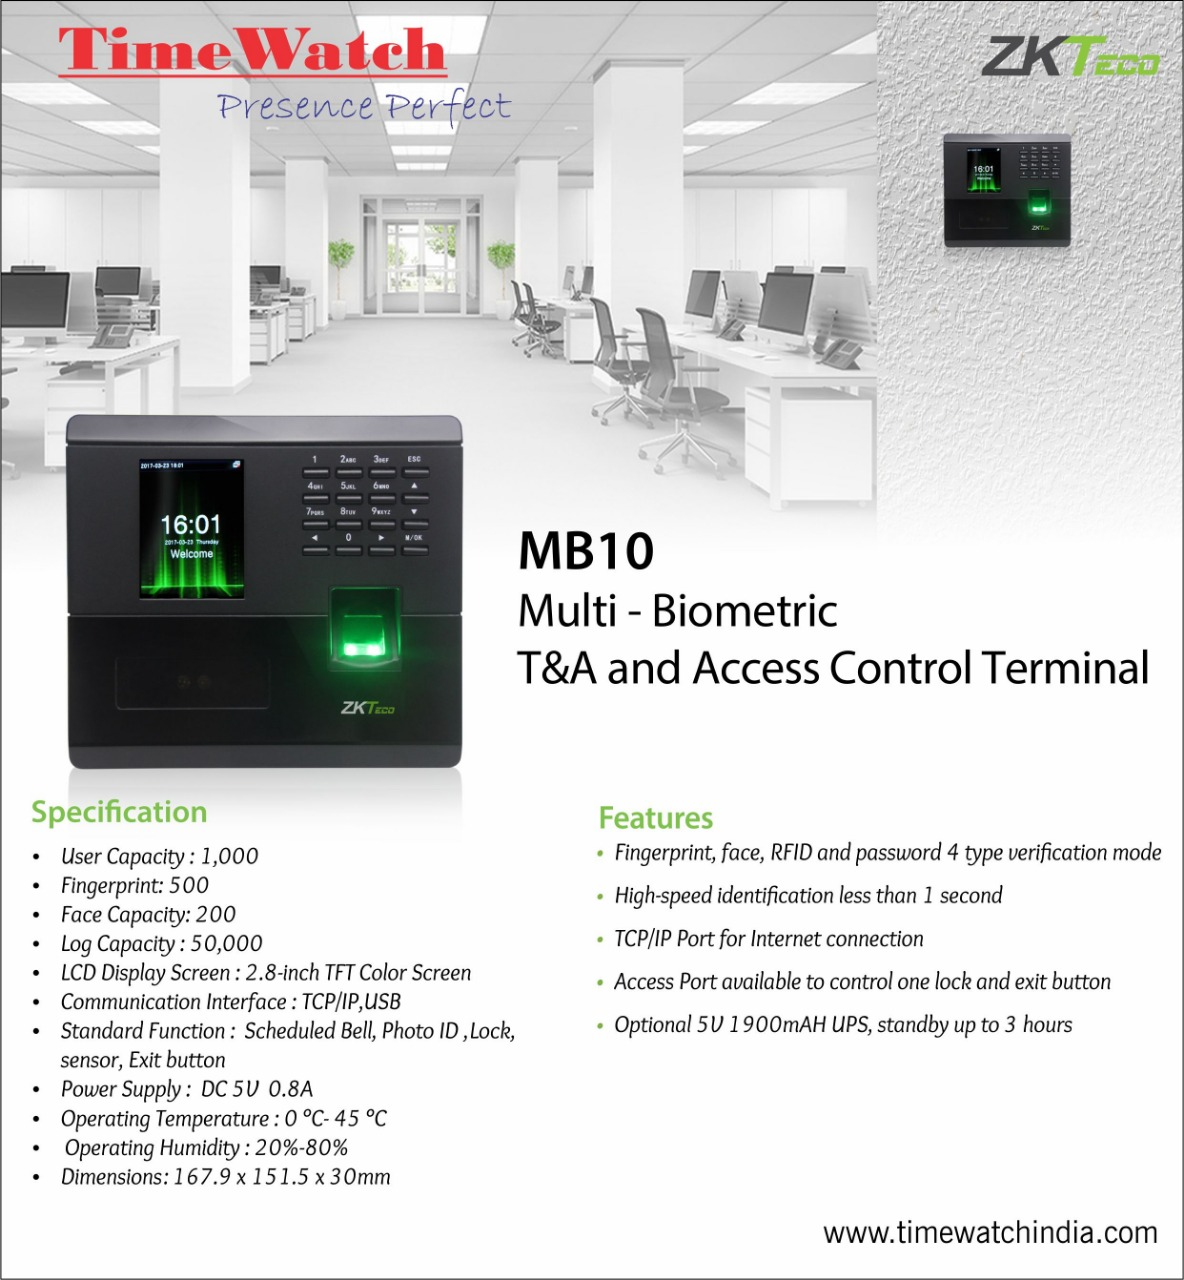 Biometric and Access Control Technology: Benefits for Time